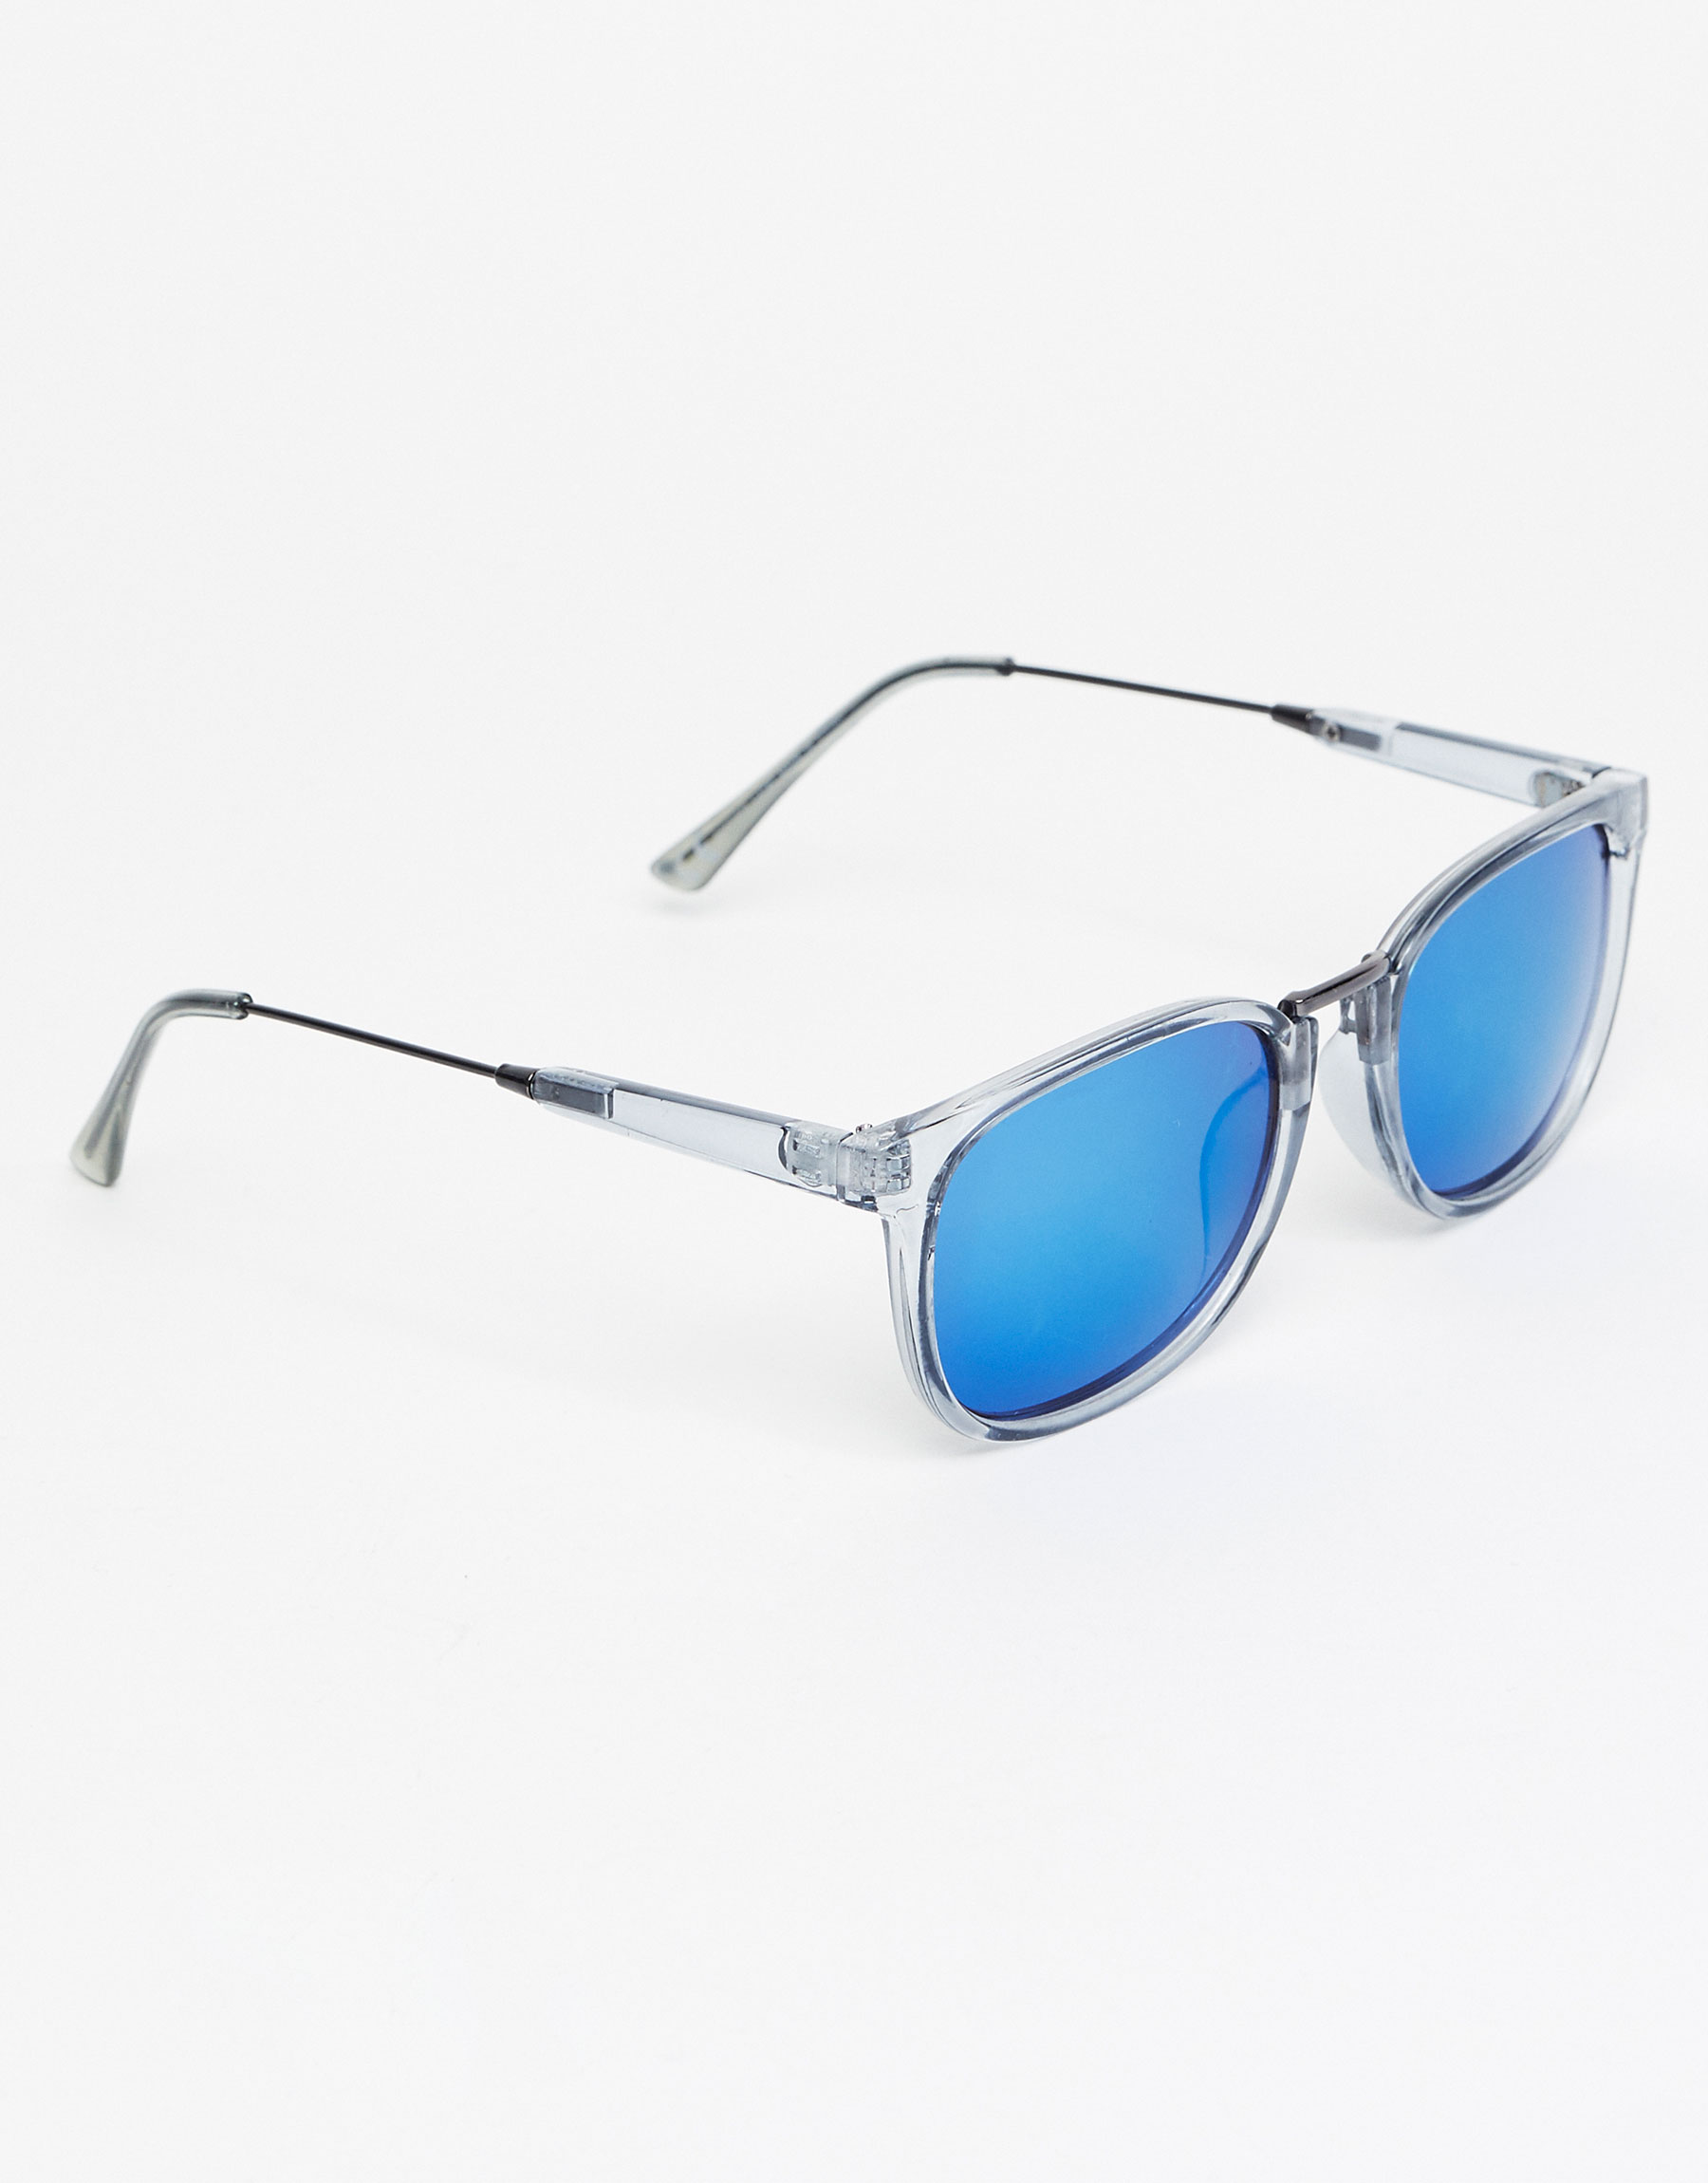 Transparent resin sunglasses